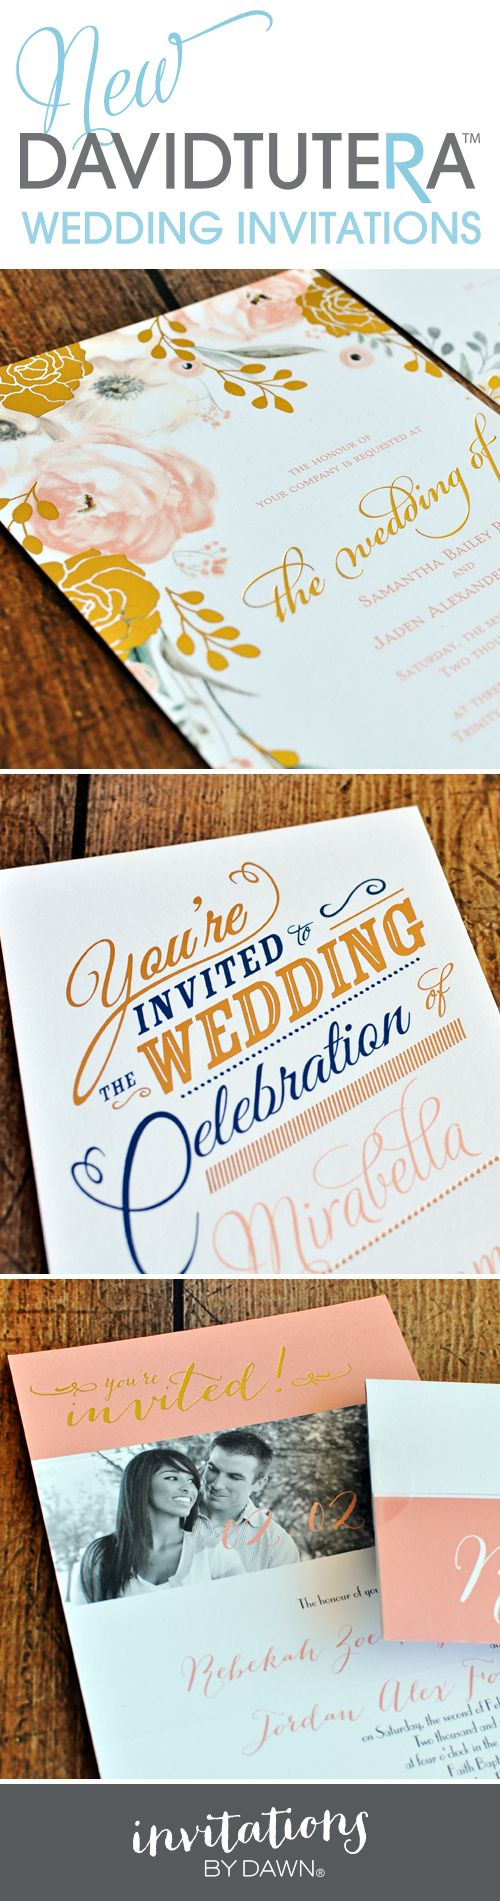 David Tutera Wedding Invitations 15 best David